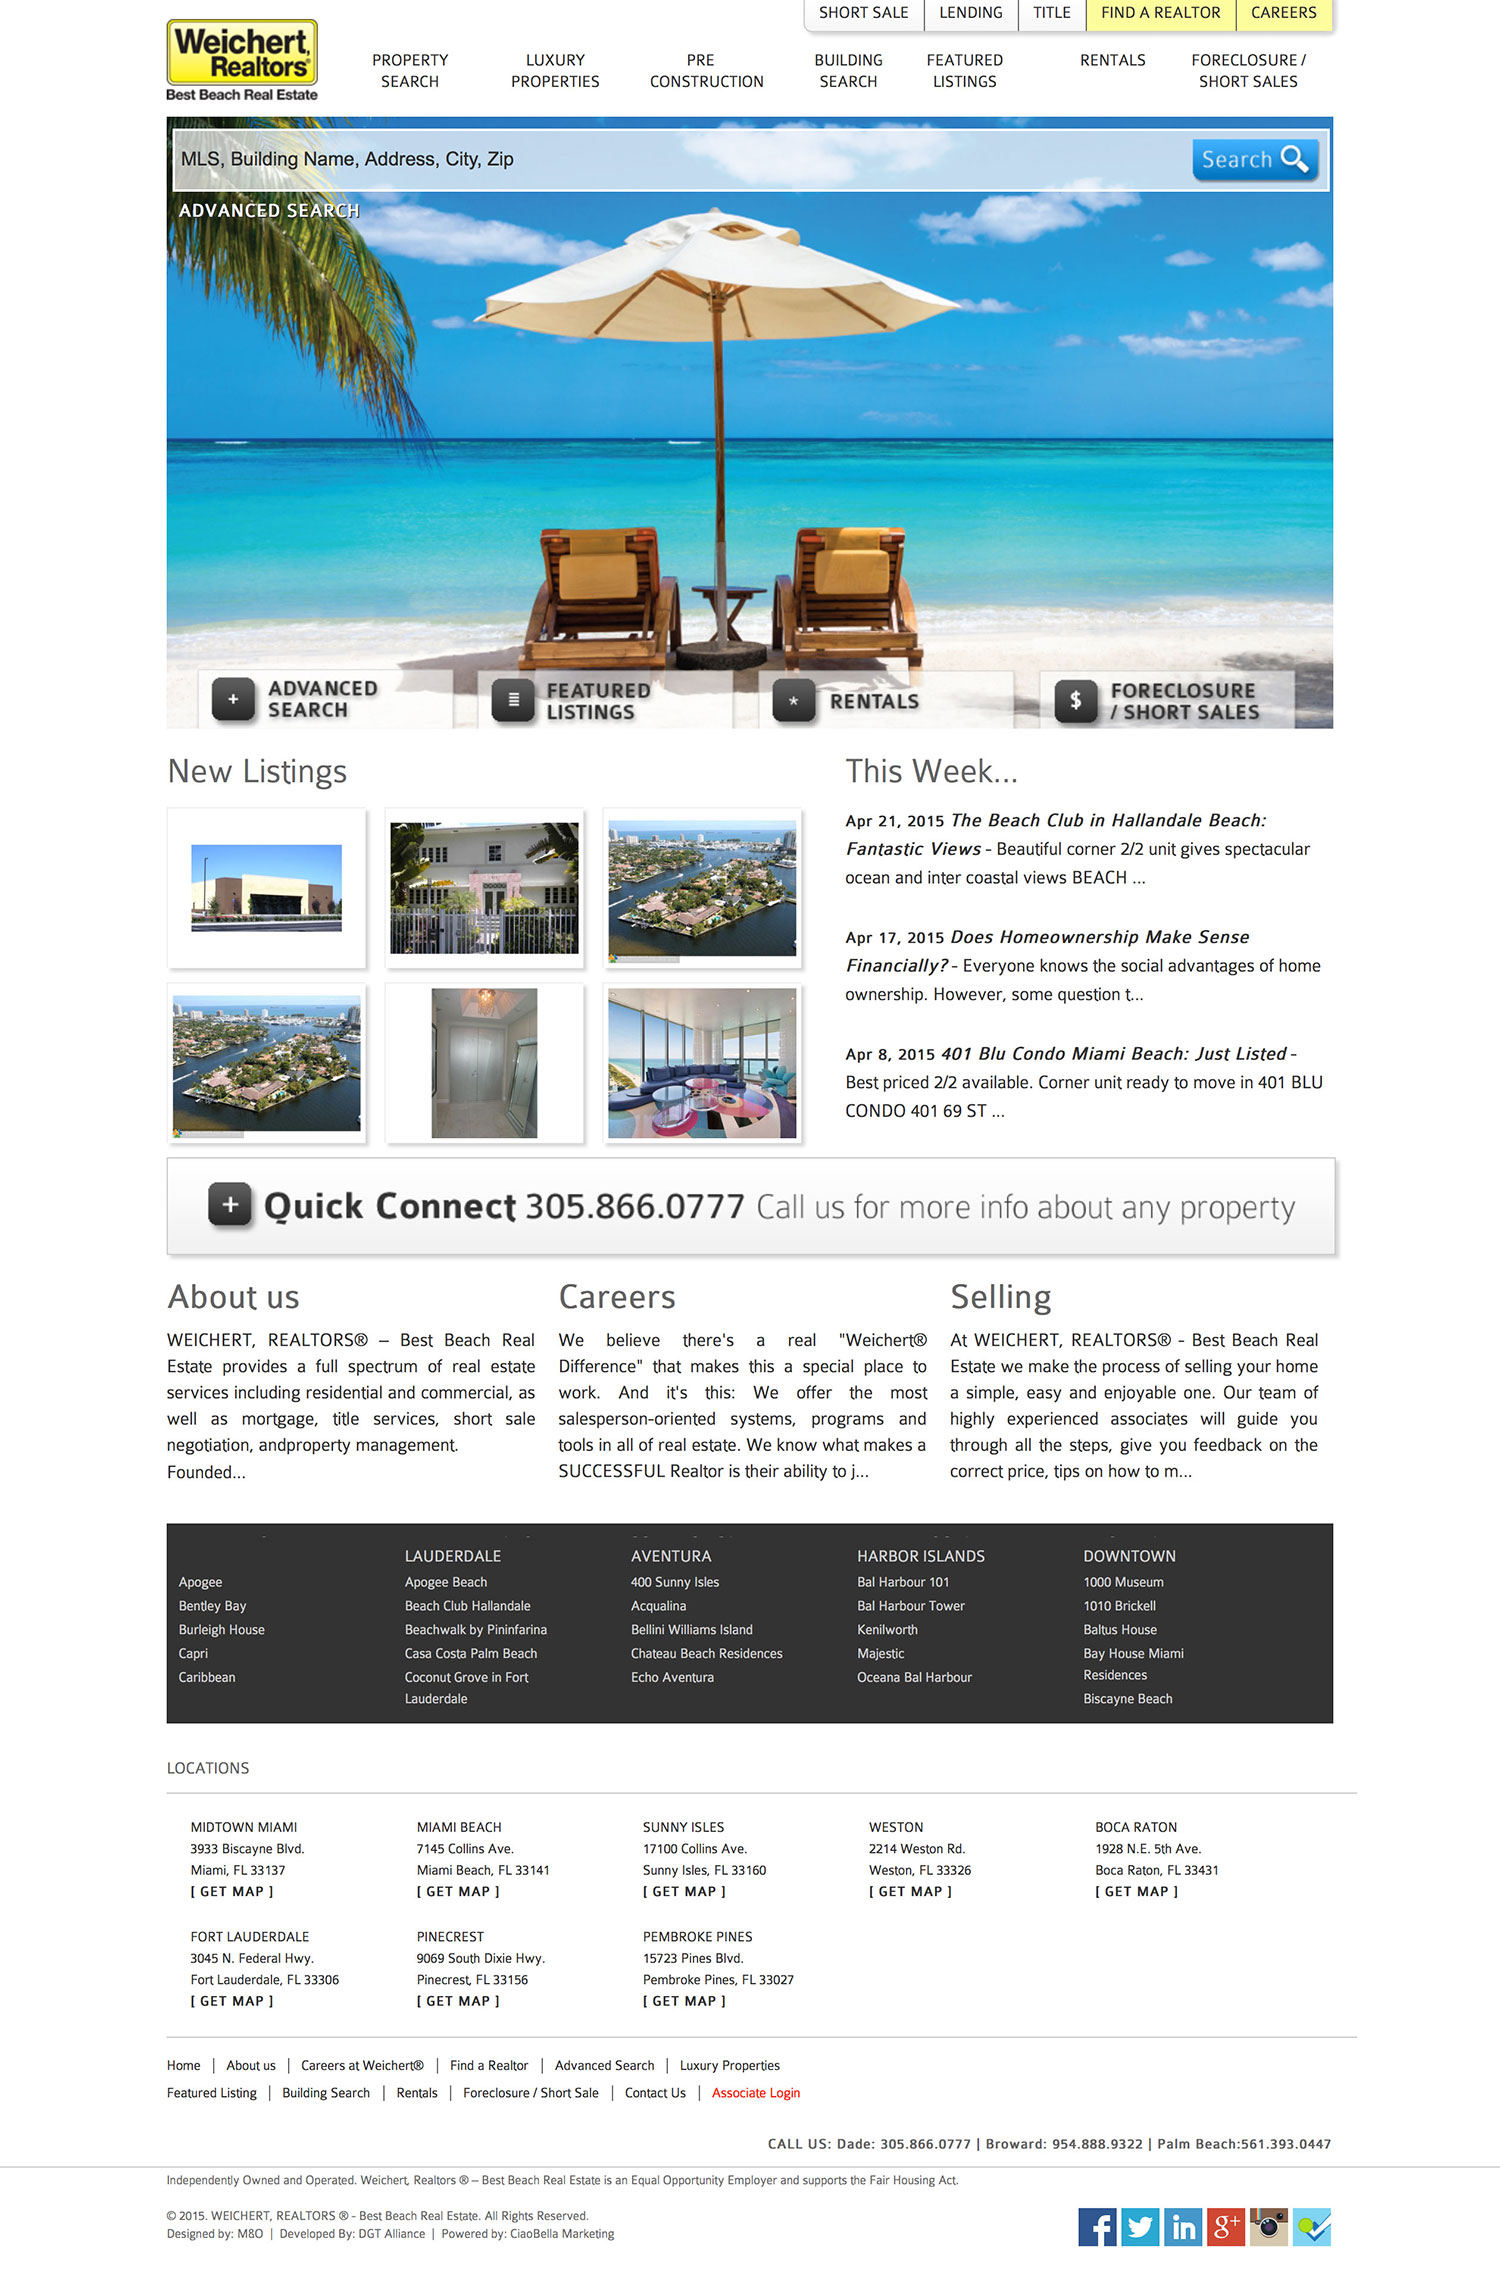 Weichert Best Beach - Web Design